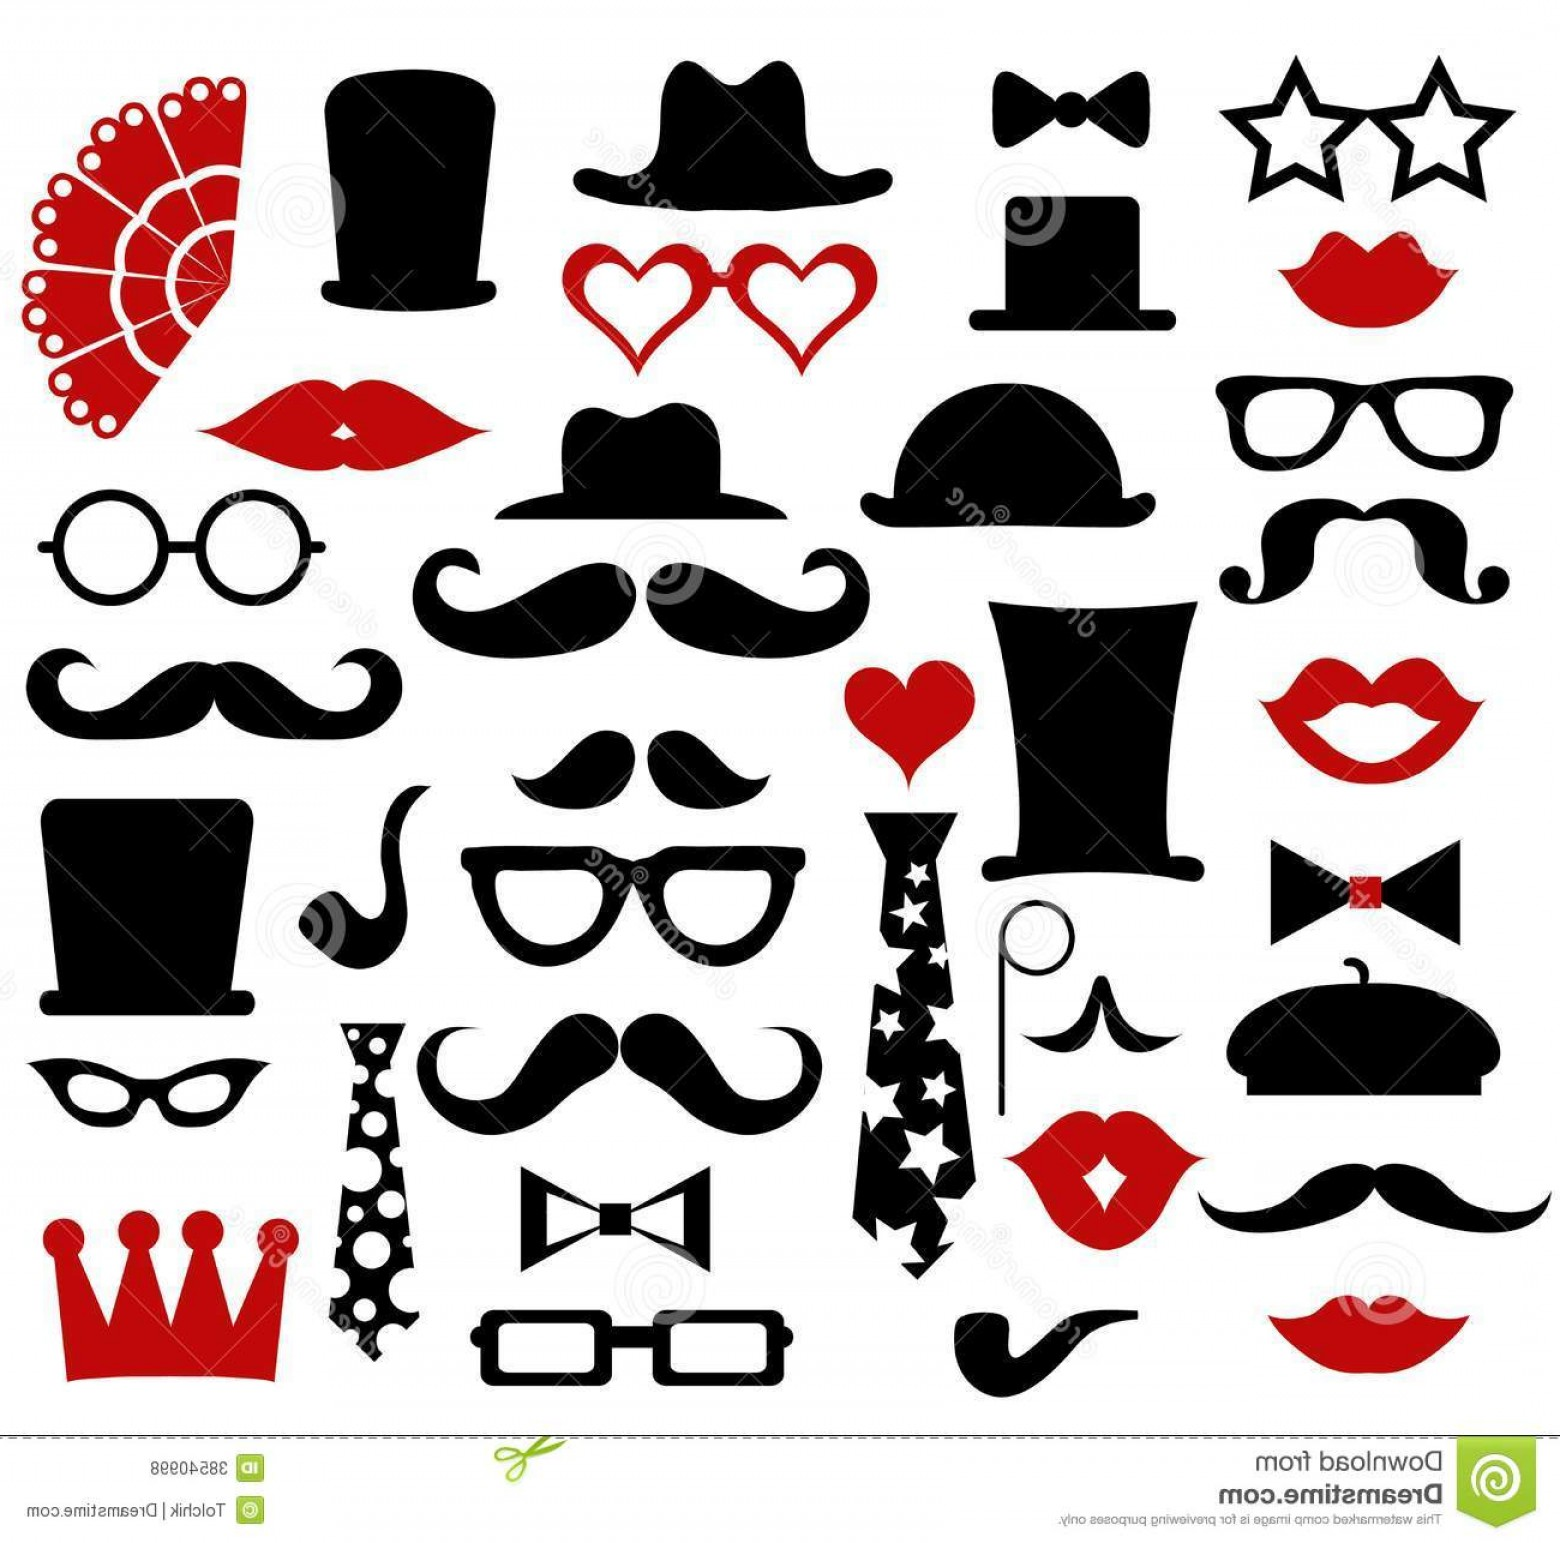 Free Vector Hipster: Royalty Free Stock Photos Hipster Design Elements Vector Image